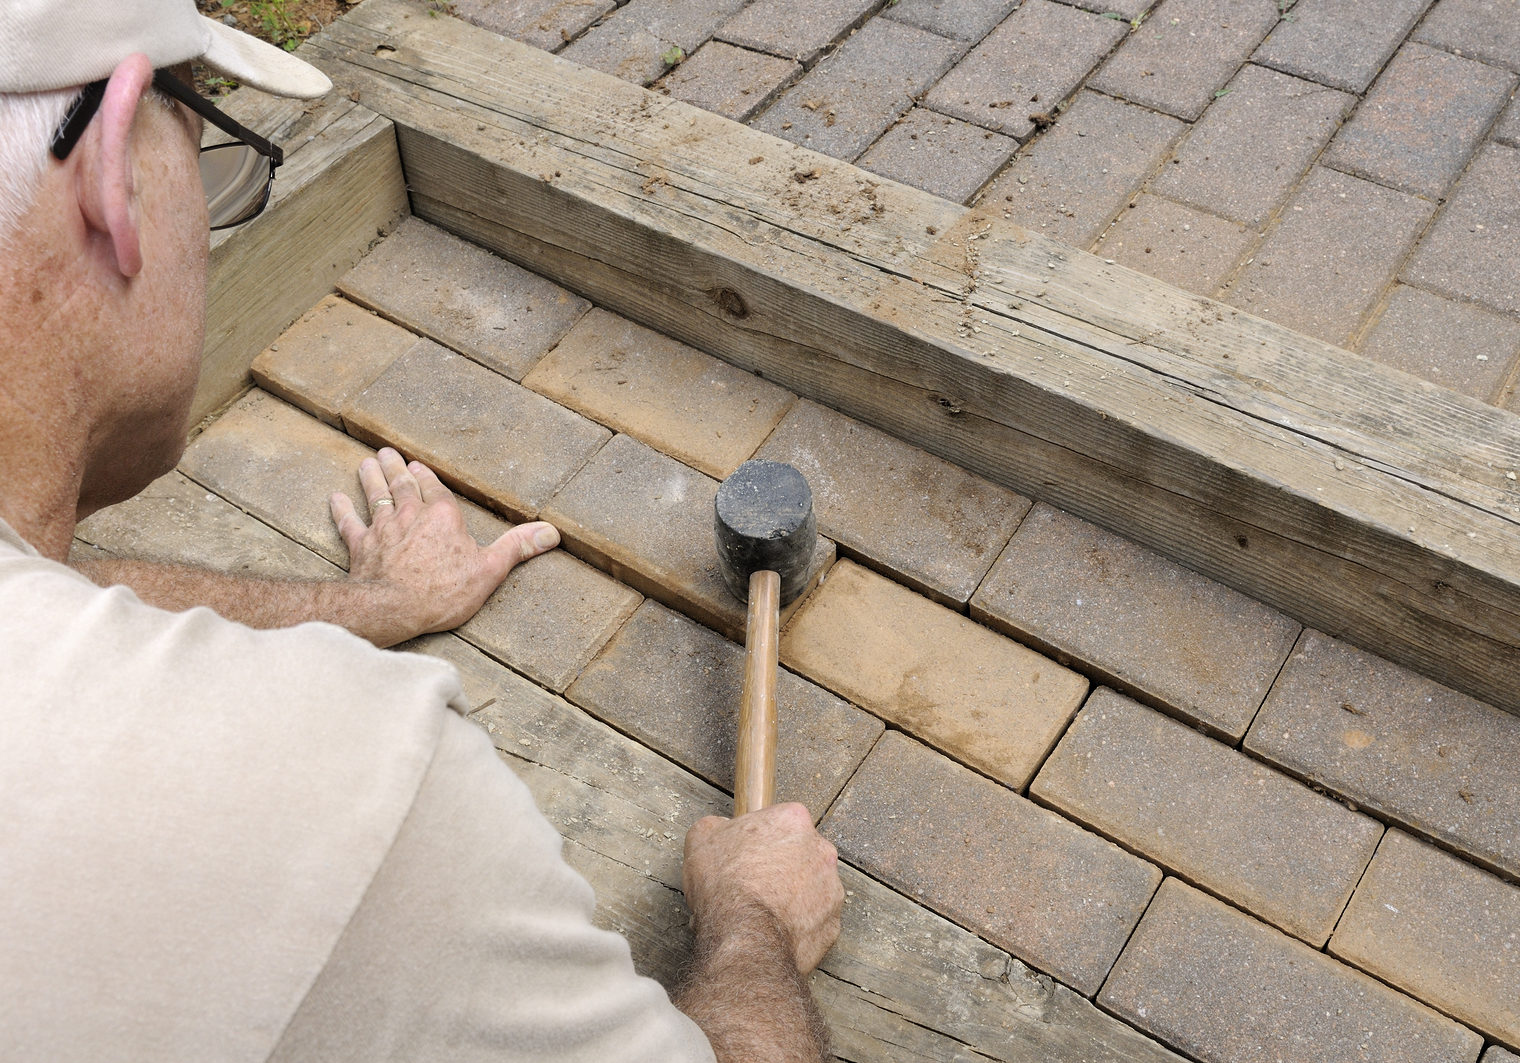 Construction worker installing brick pavers on walkway and steps.